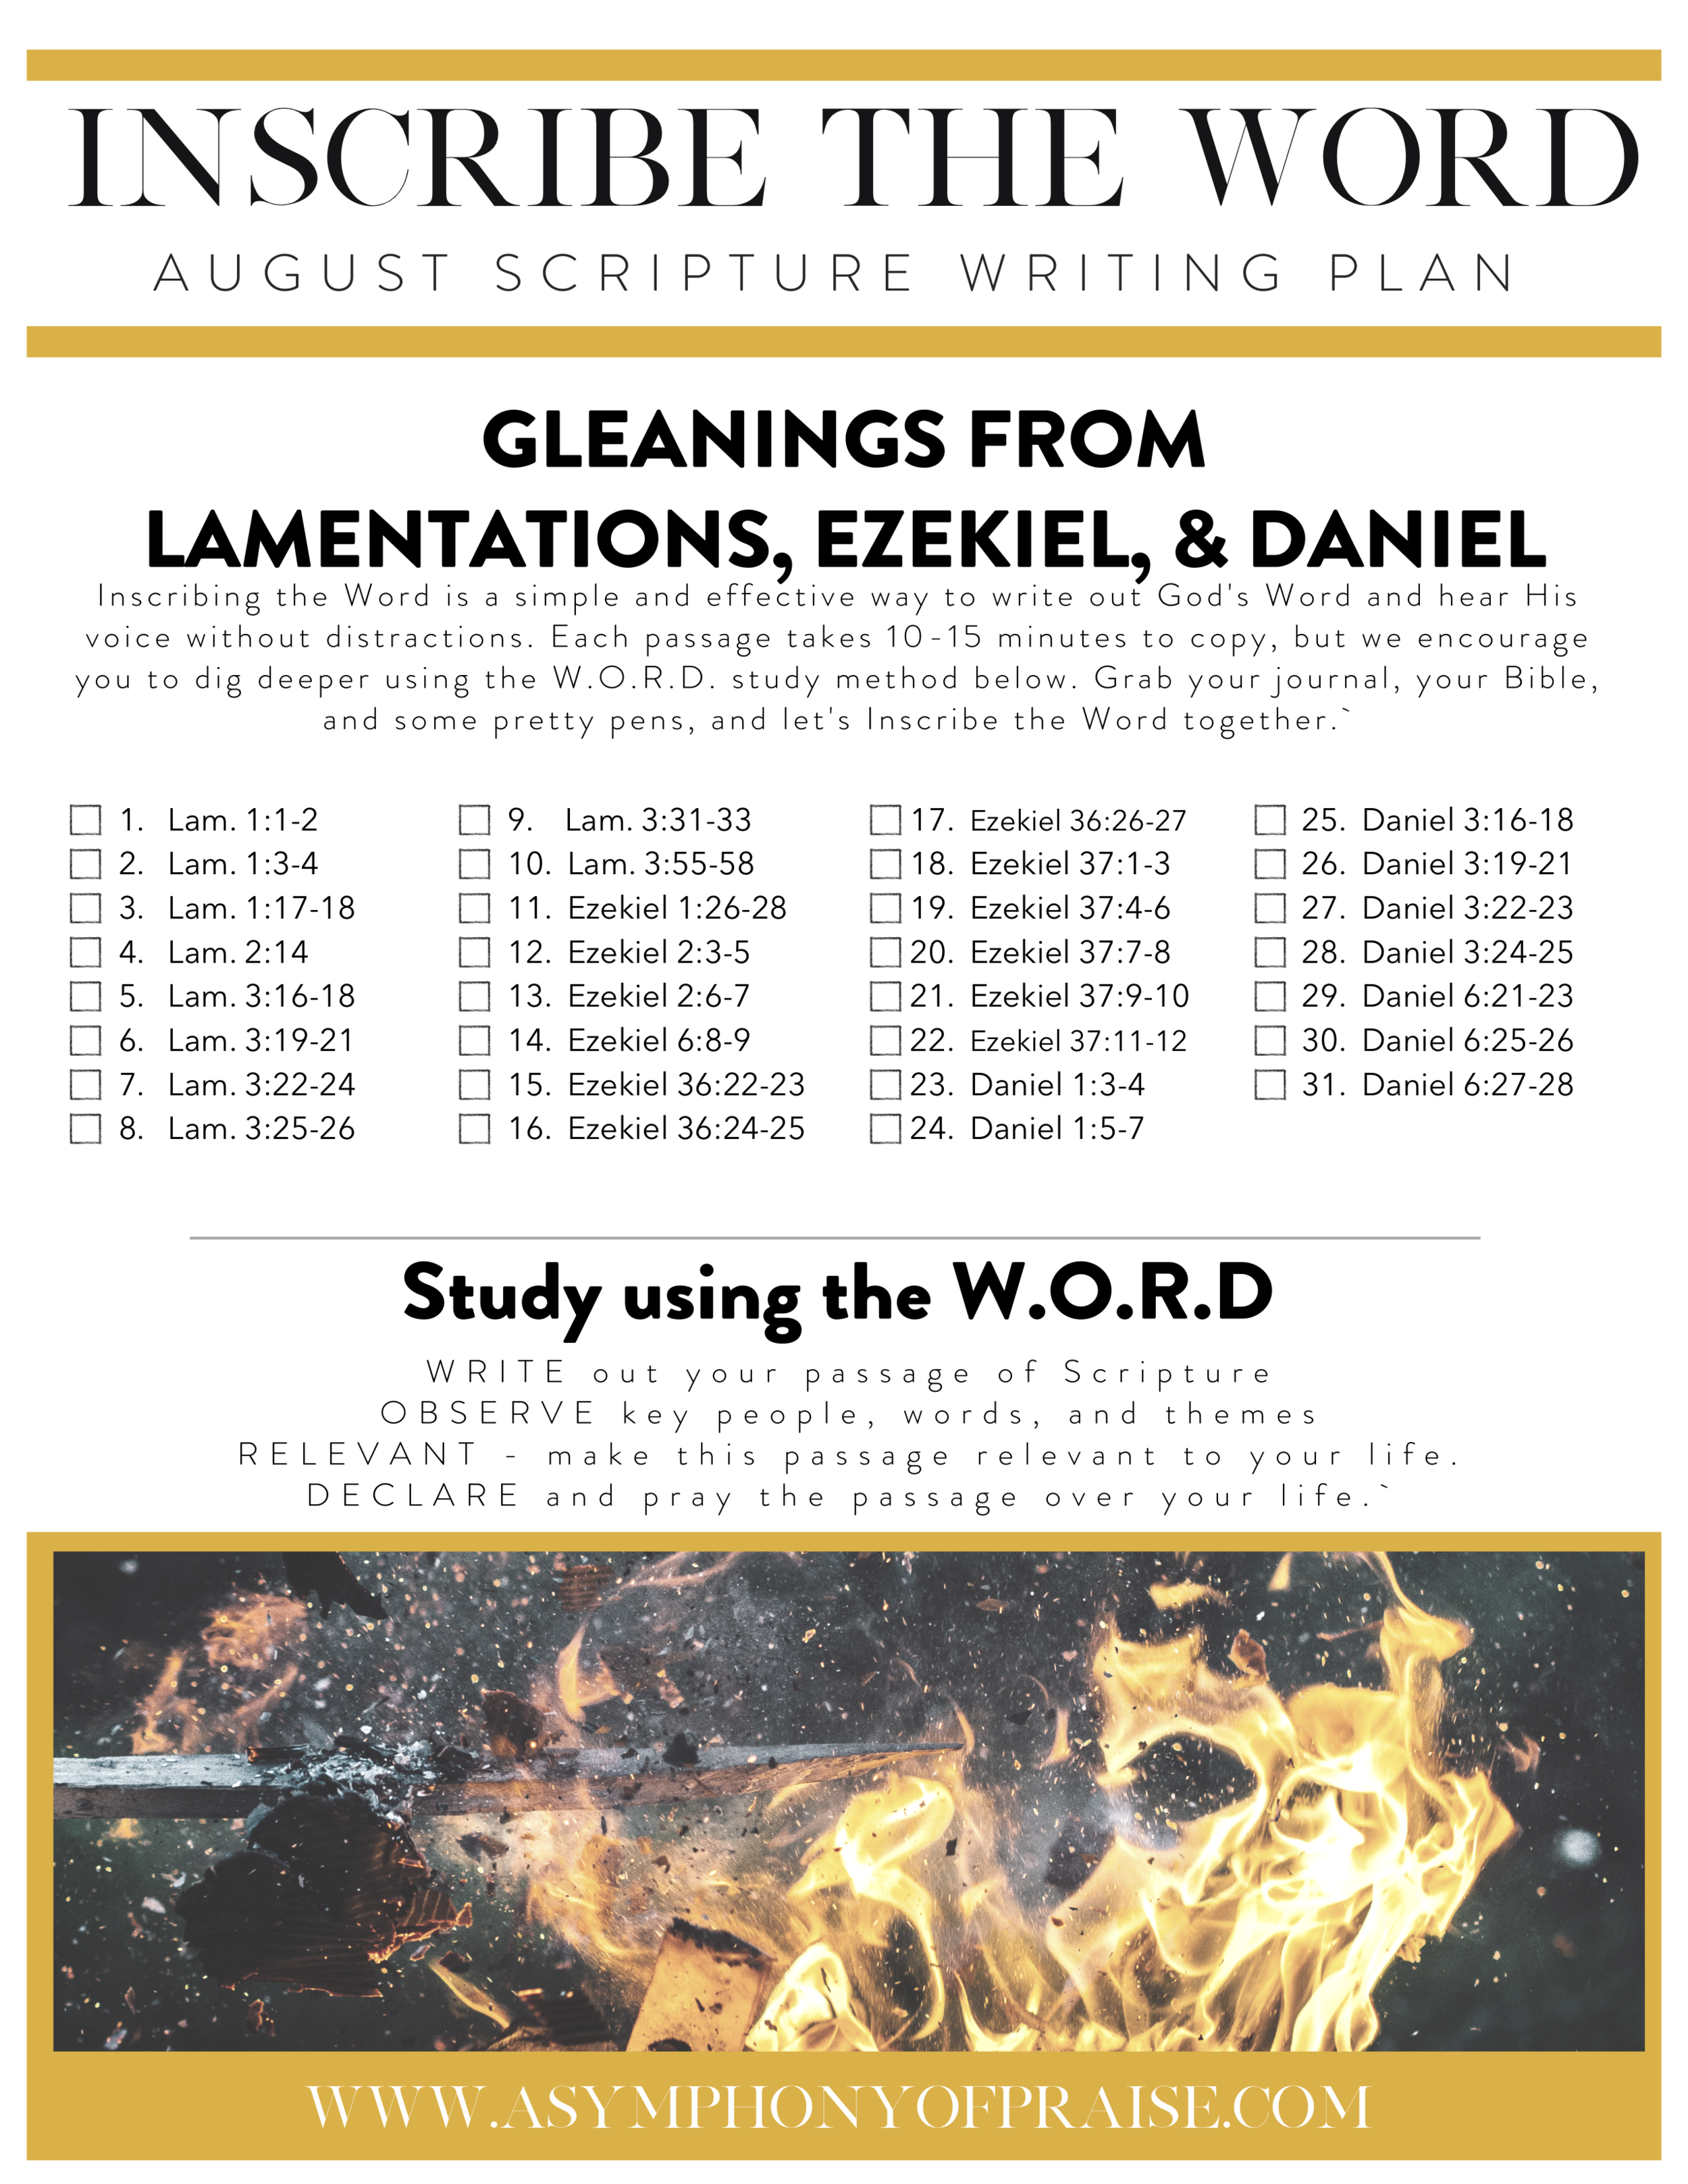 Our August Scripture Writing Plan is here and we are so excited to write through three of the major prophets; Lamentations, Ezekiel, and Daniel. As we continue to Write through the Bible this year, I encourage you not to pass up these Prophetic Books of the Old Testament. Inside you will find a treasure. Join us for this month's Bible Study Plan and get ready to Inscribe the Word as we Inscribe Lamentations, Ezekiel, and Daniel.